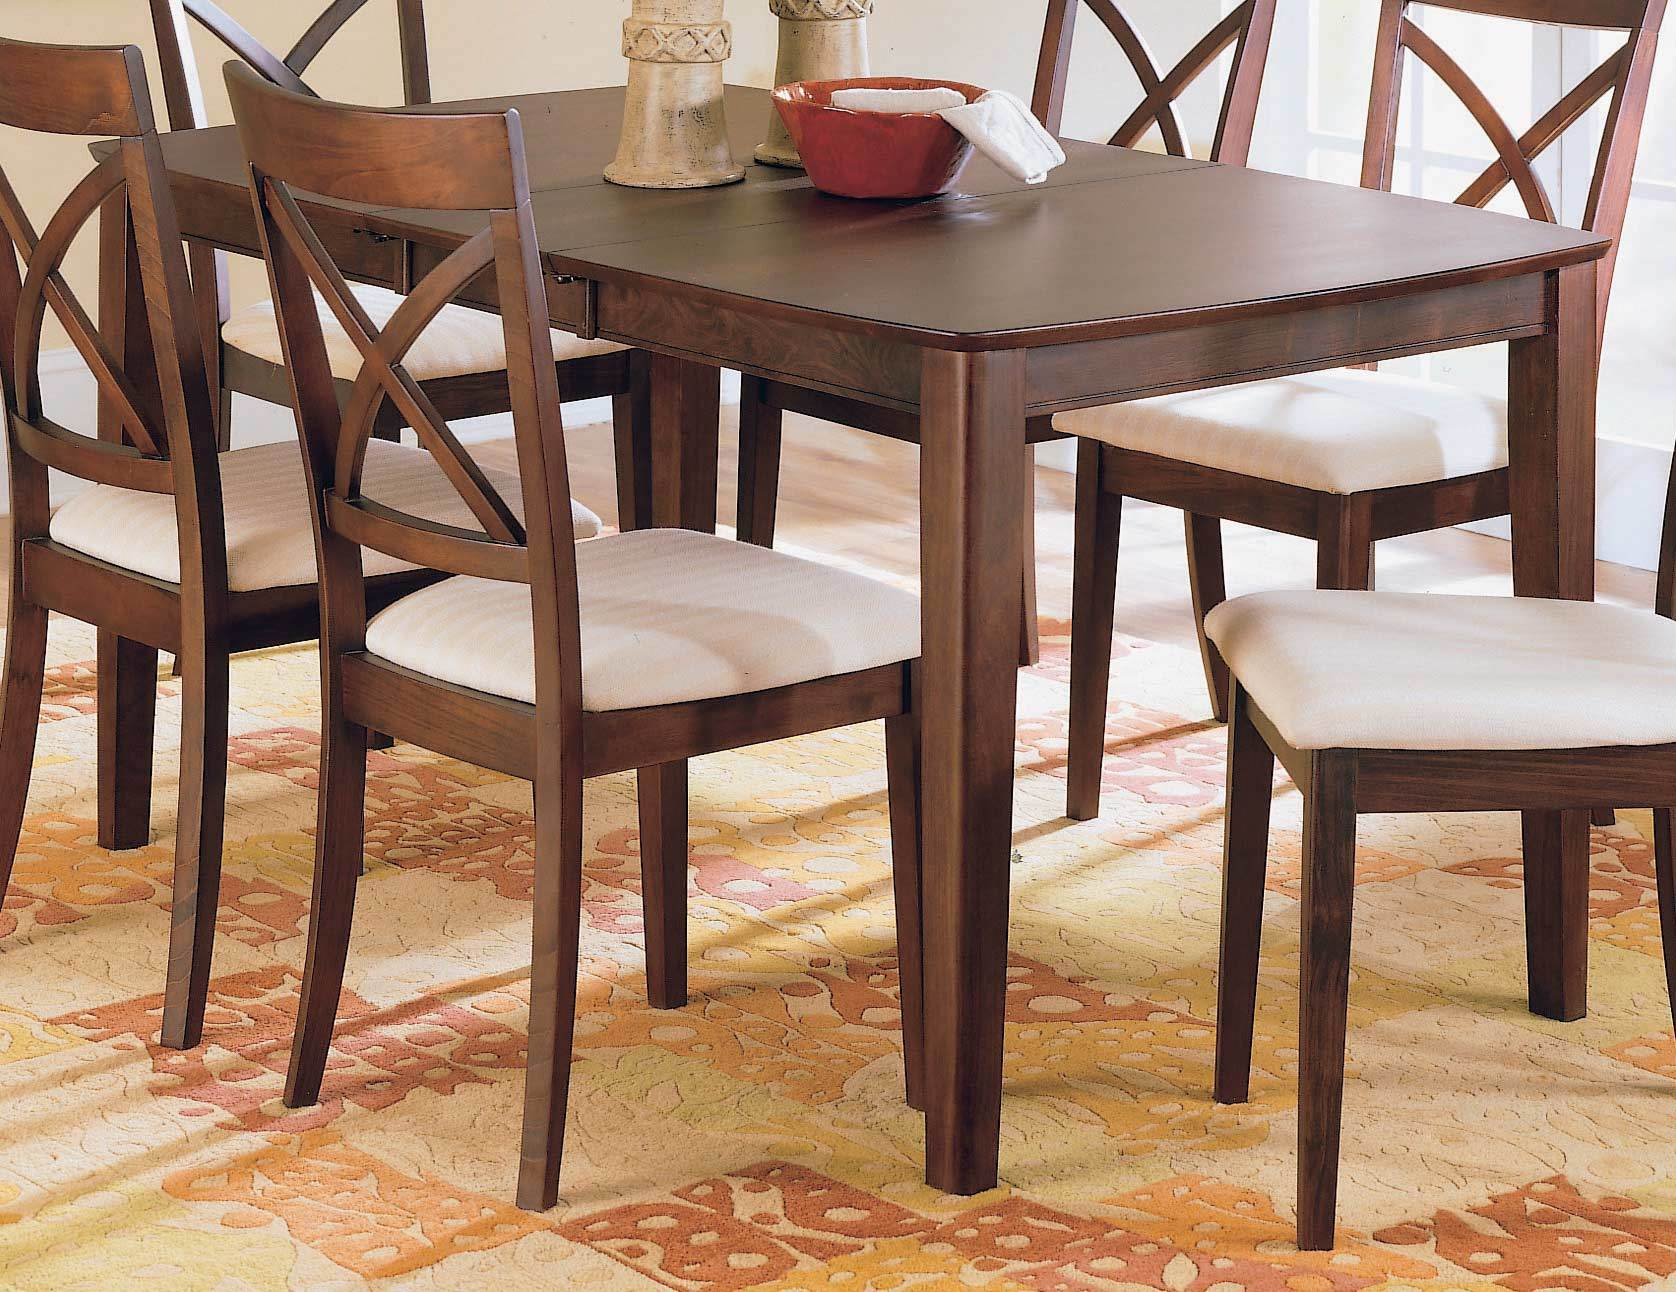 Dining table dining table and chairs thailand for Dining table chairs